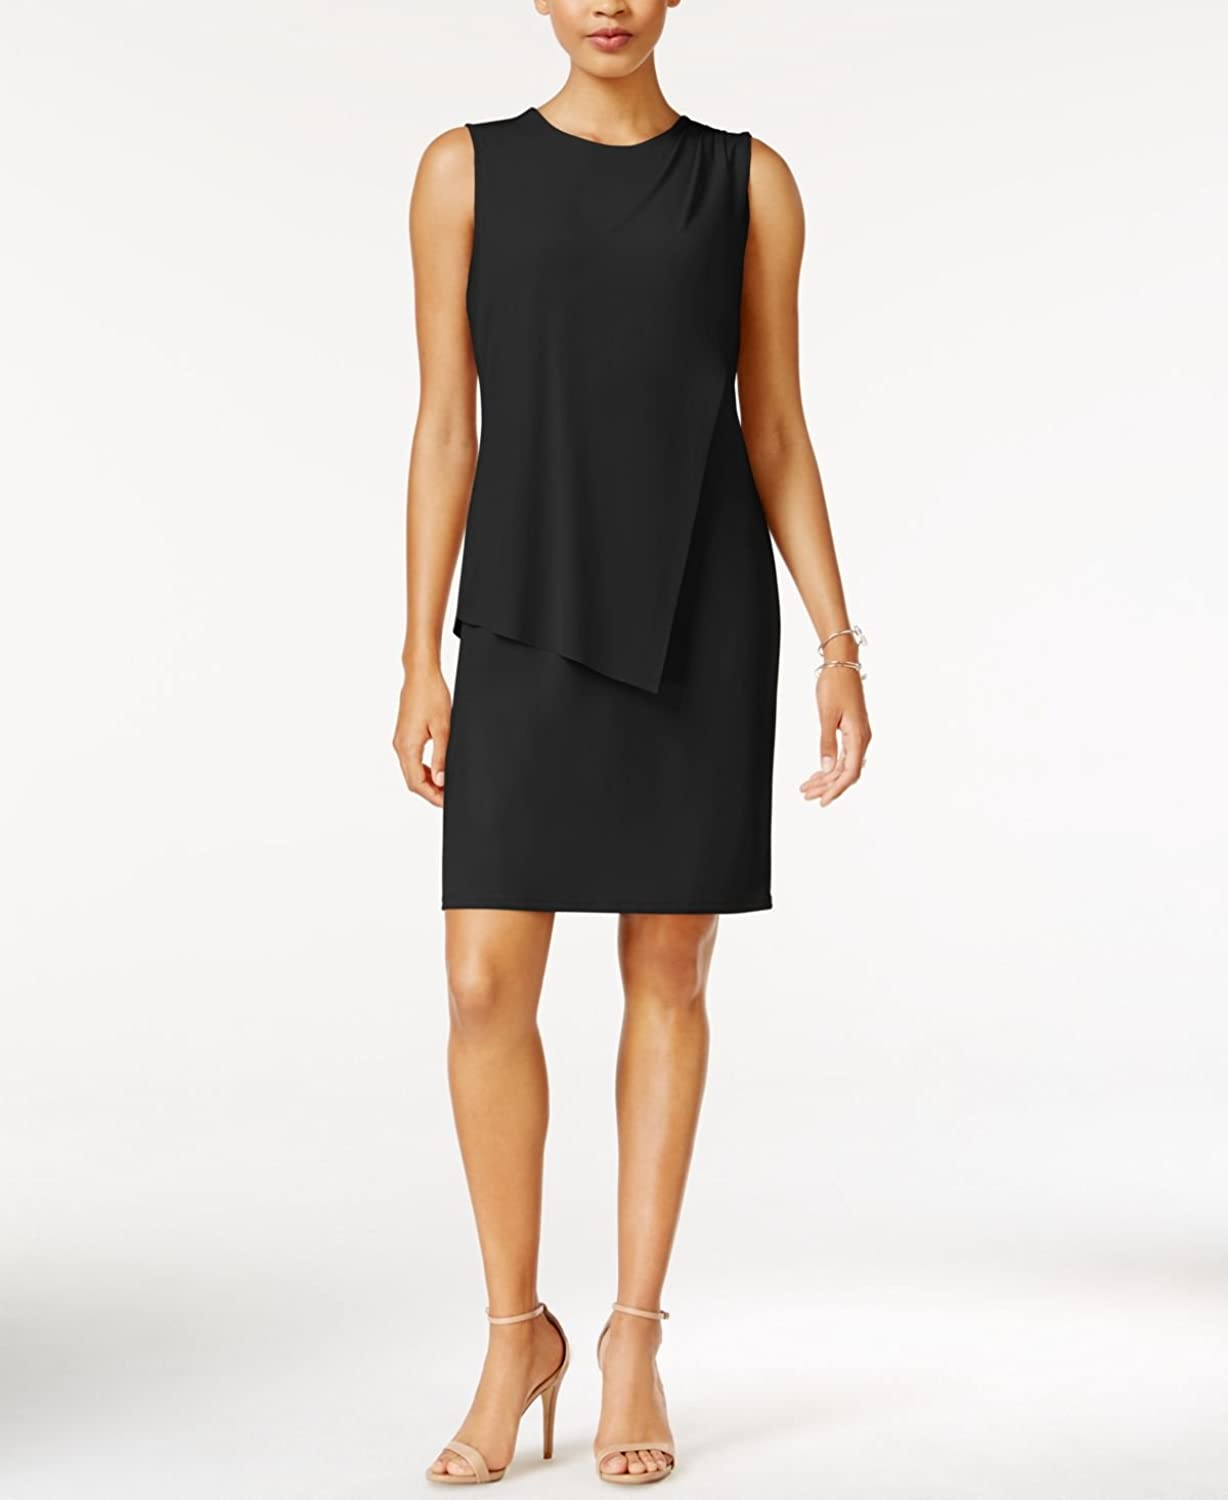 Bar III Draped Sheath Dress Black Small